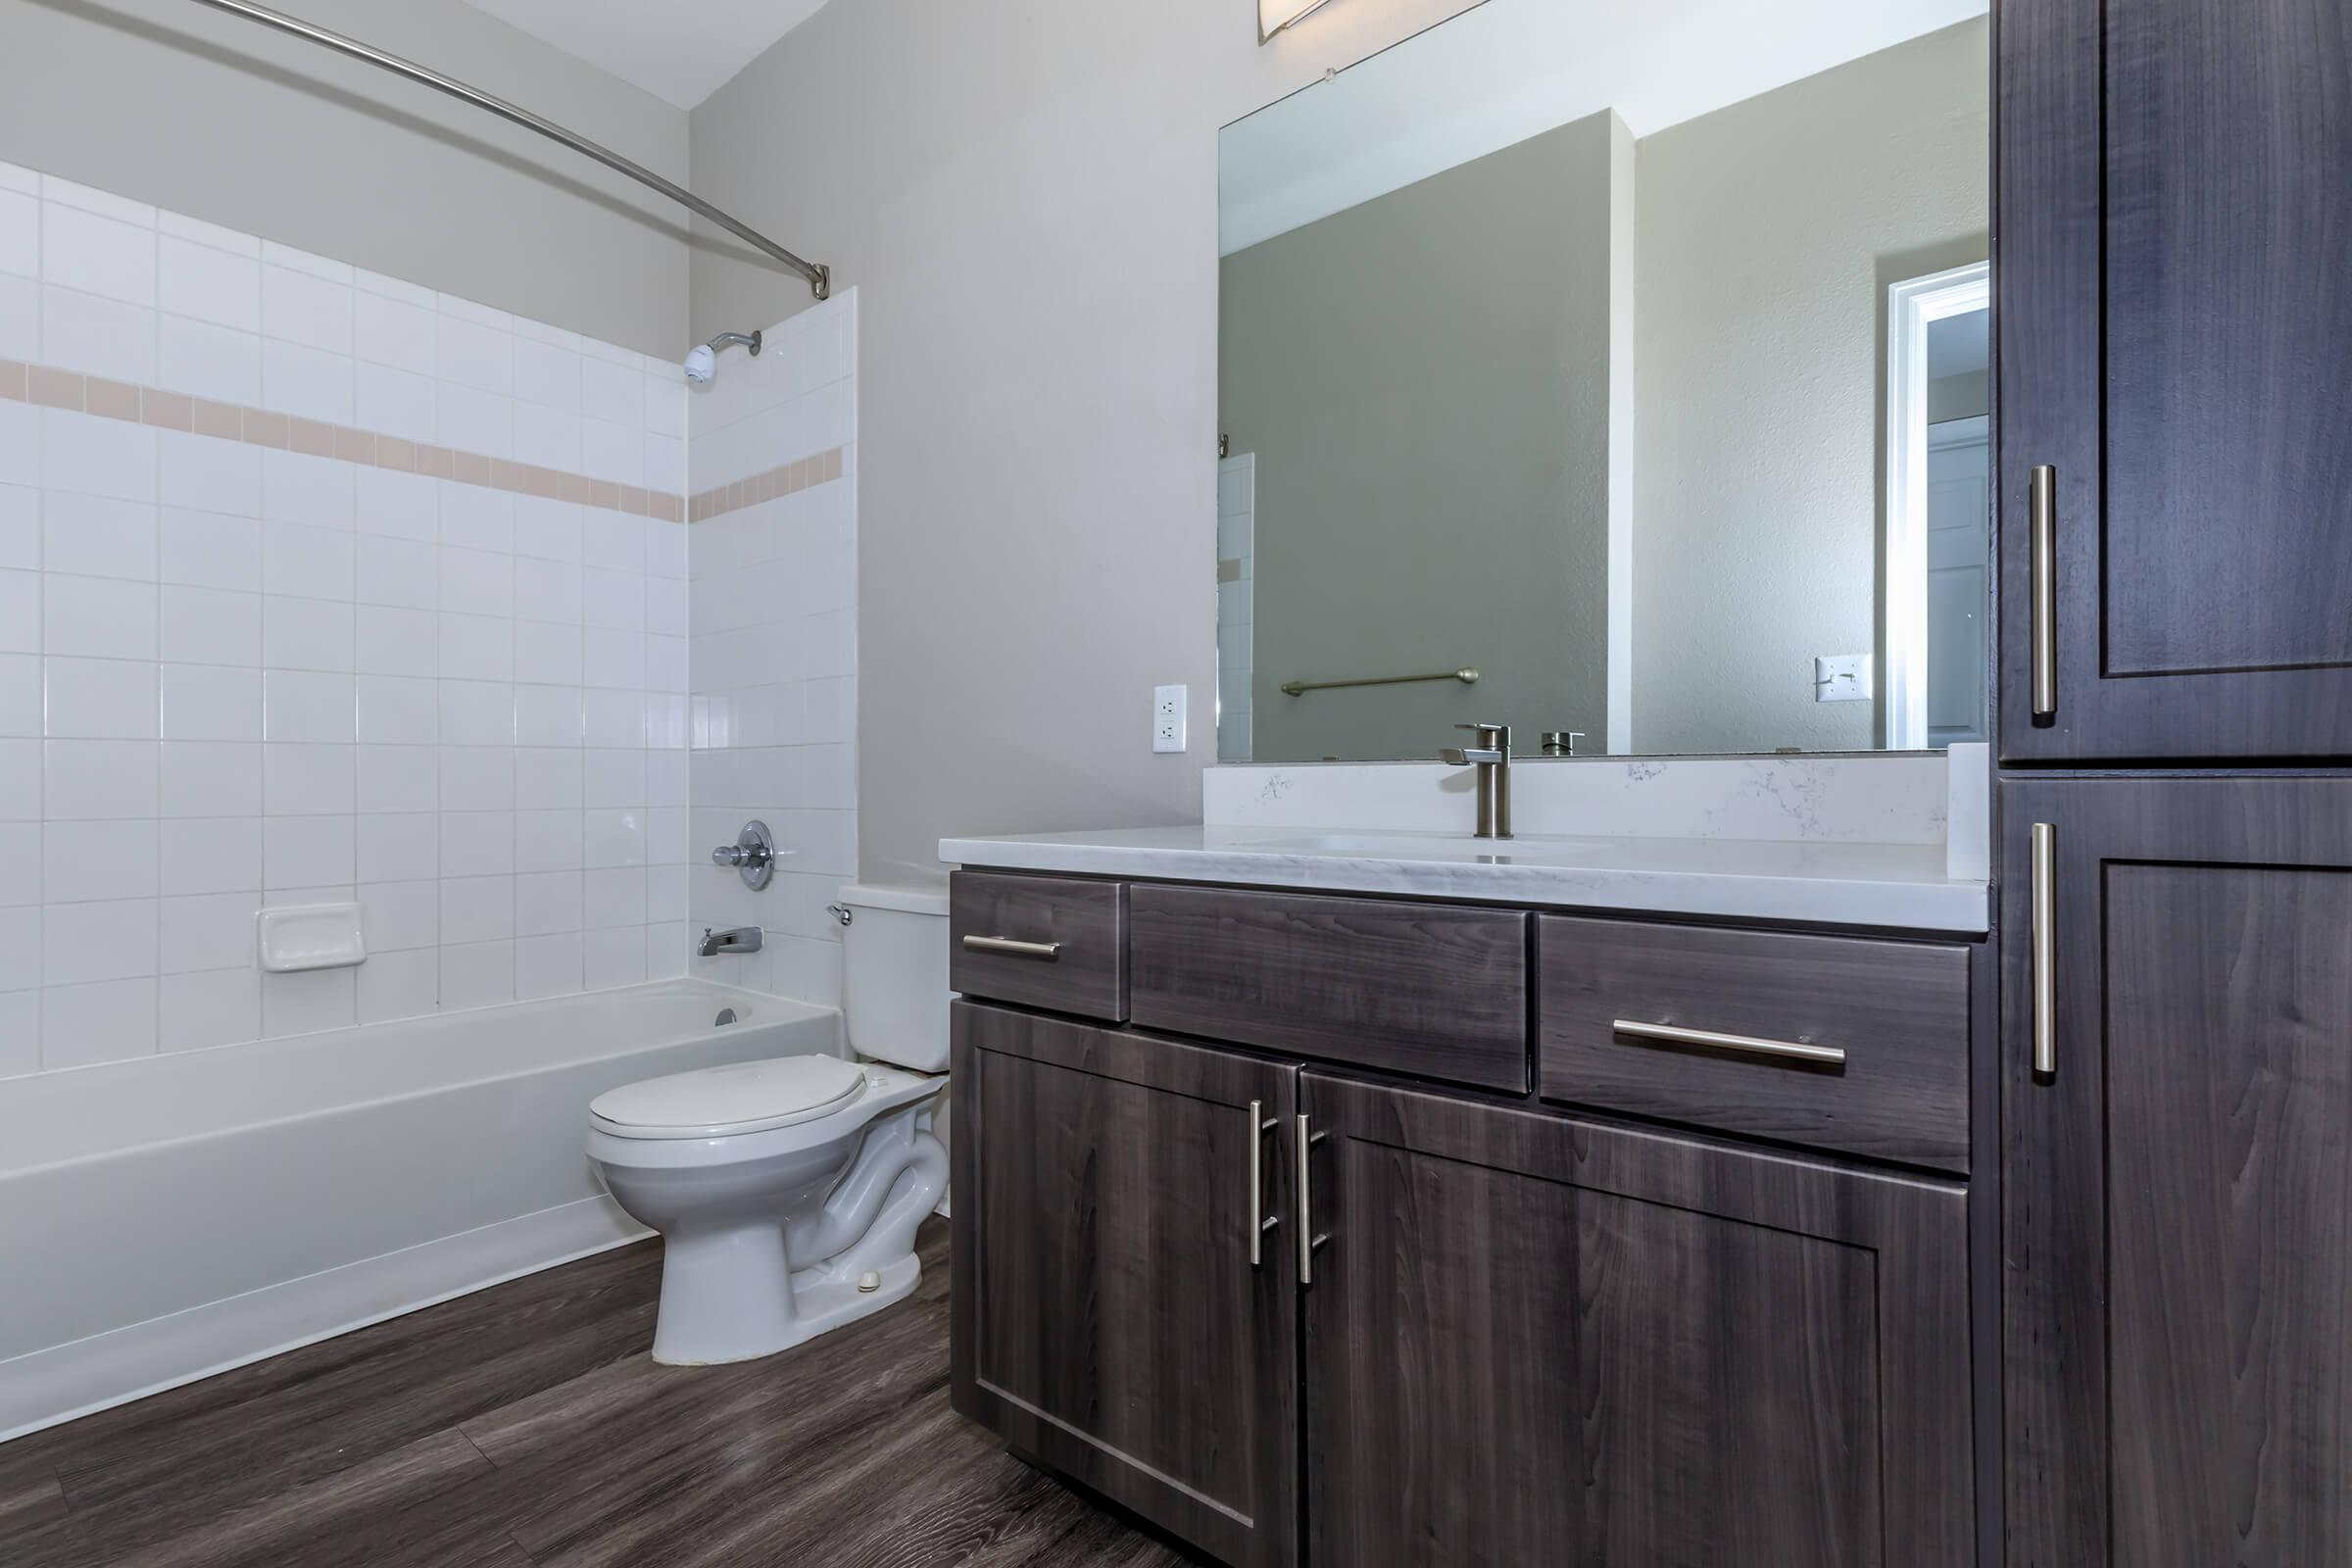 UPGRADED BATHROOM CABINETRY AT THE DAKOTA AT GOVERNOR'S RANCH